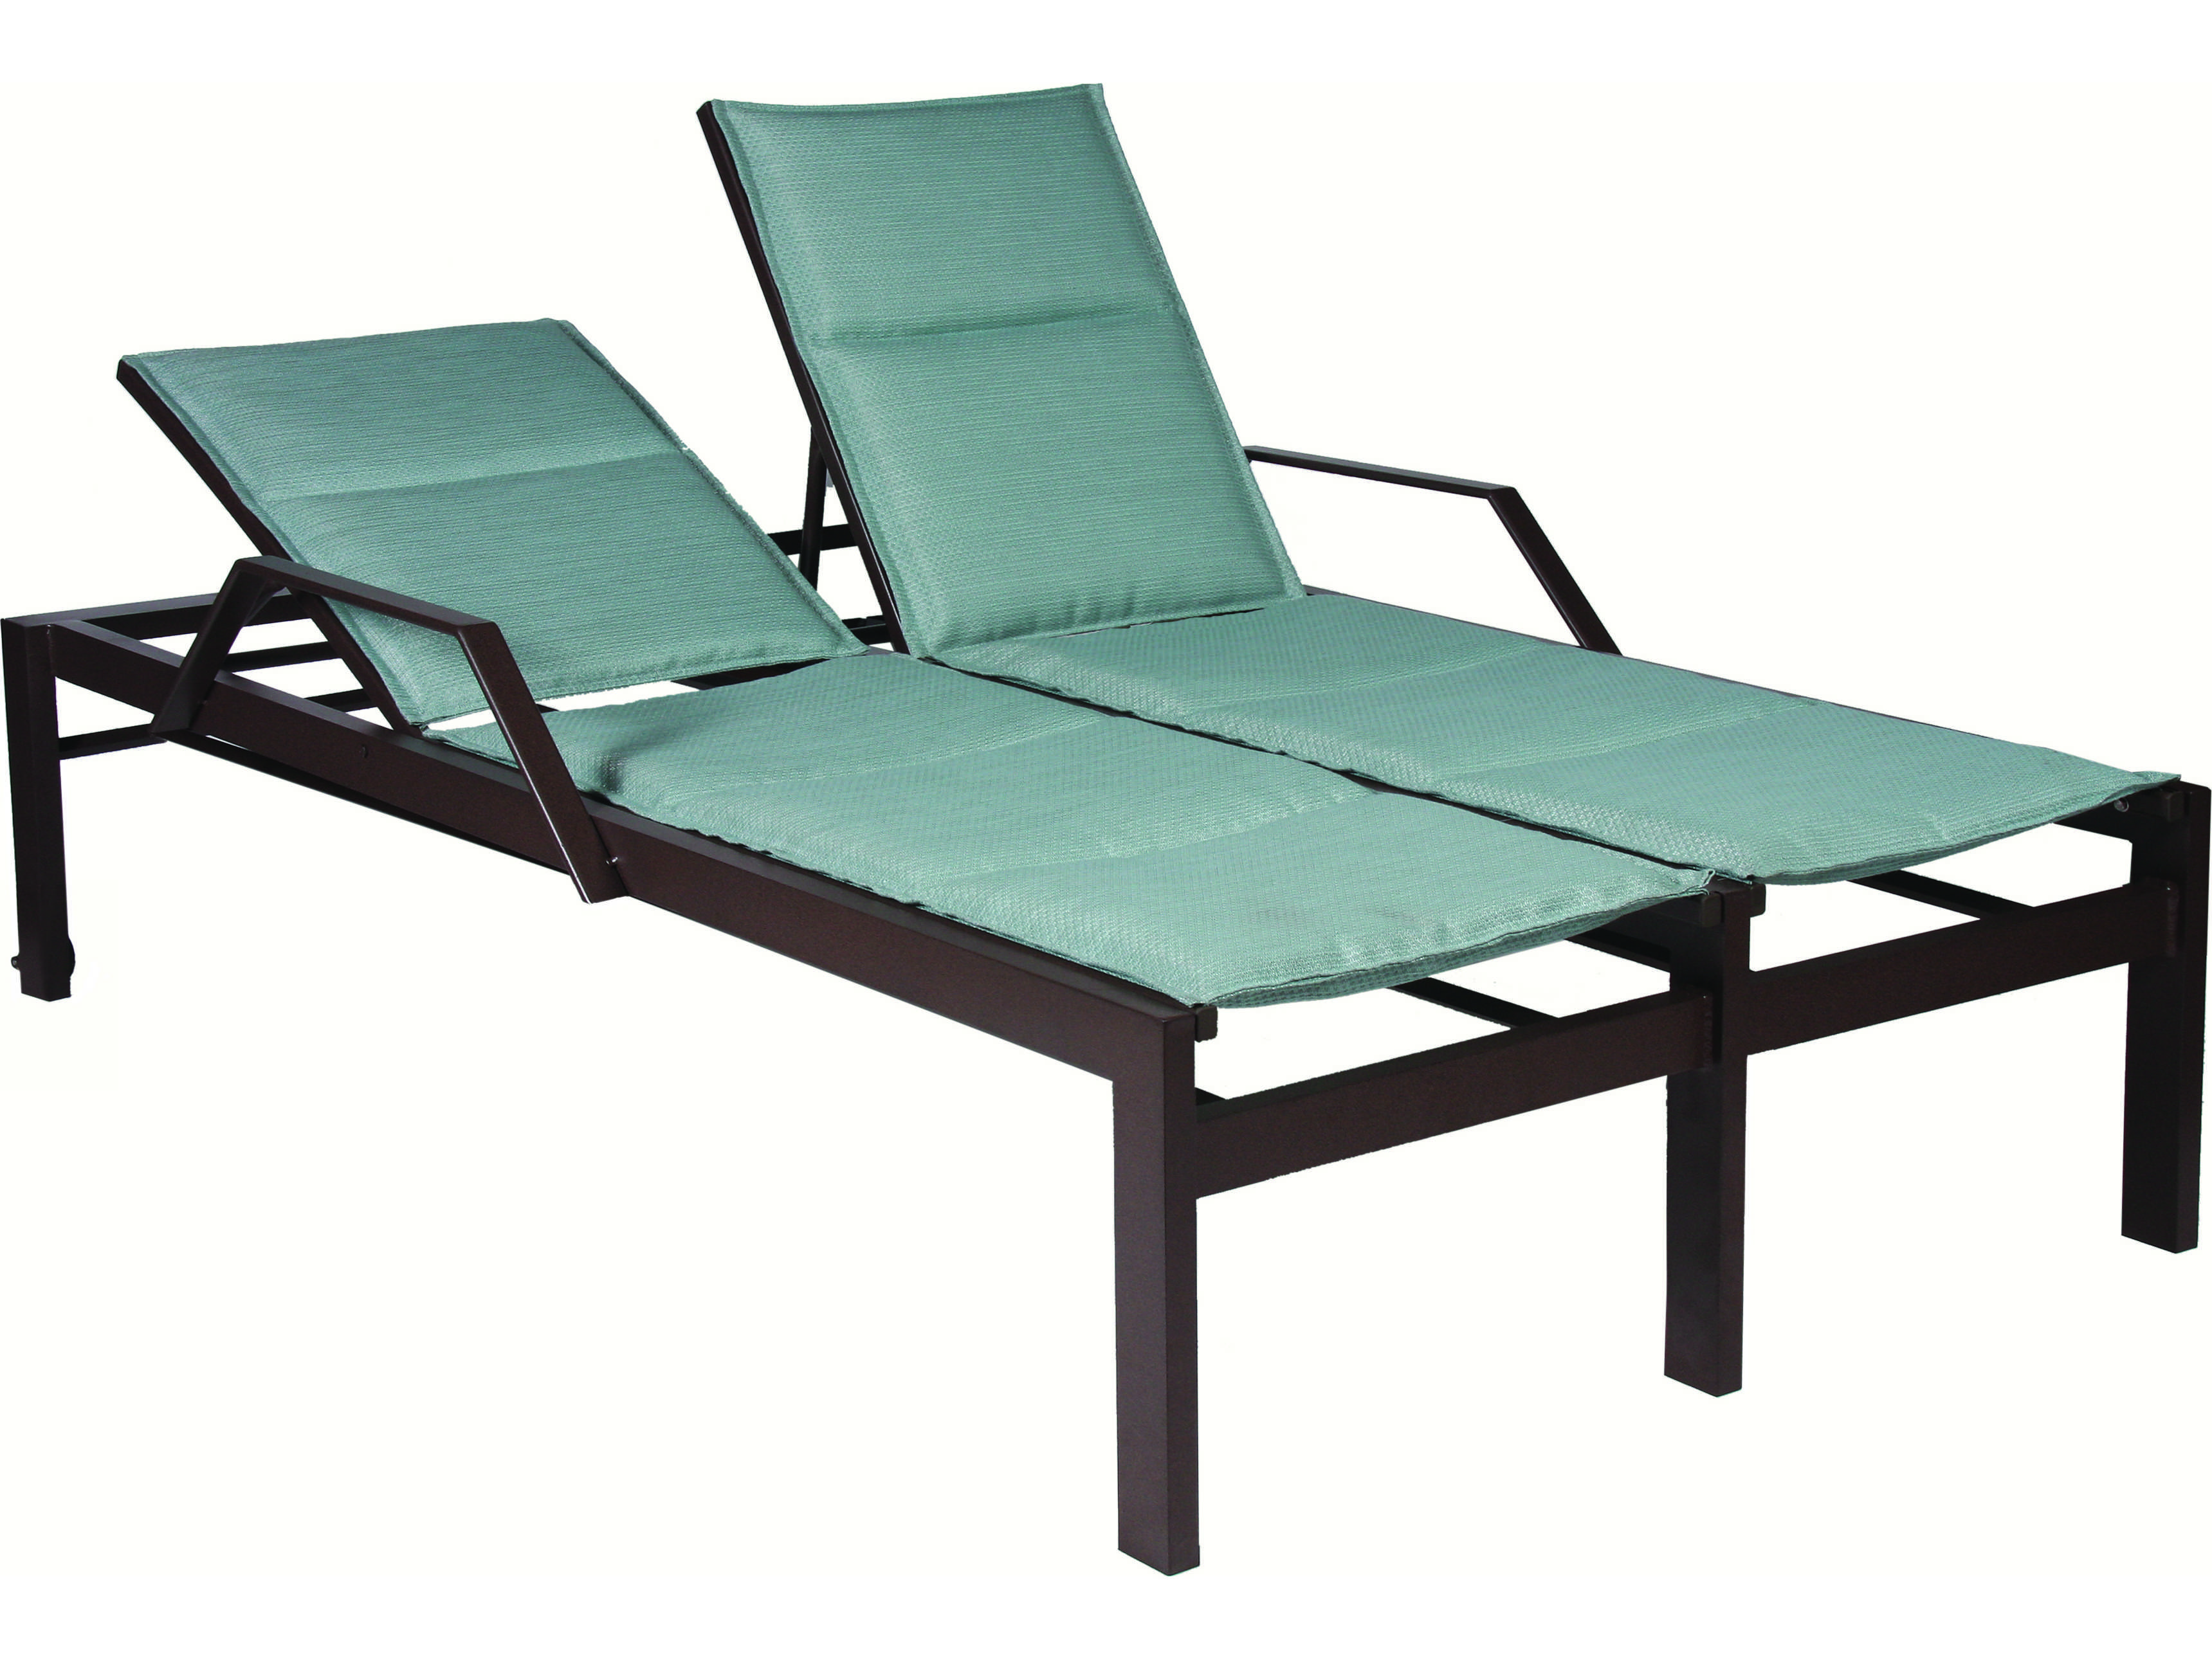 metal lounge chair with wheels 4 moms high suncoast vectra bold sling cast aluminum double chaise